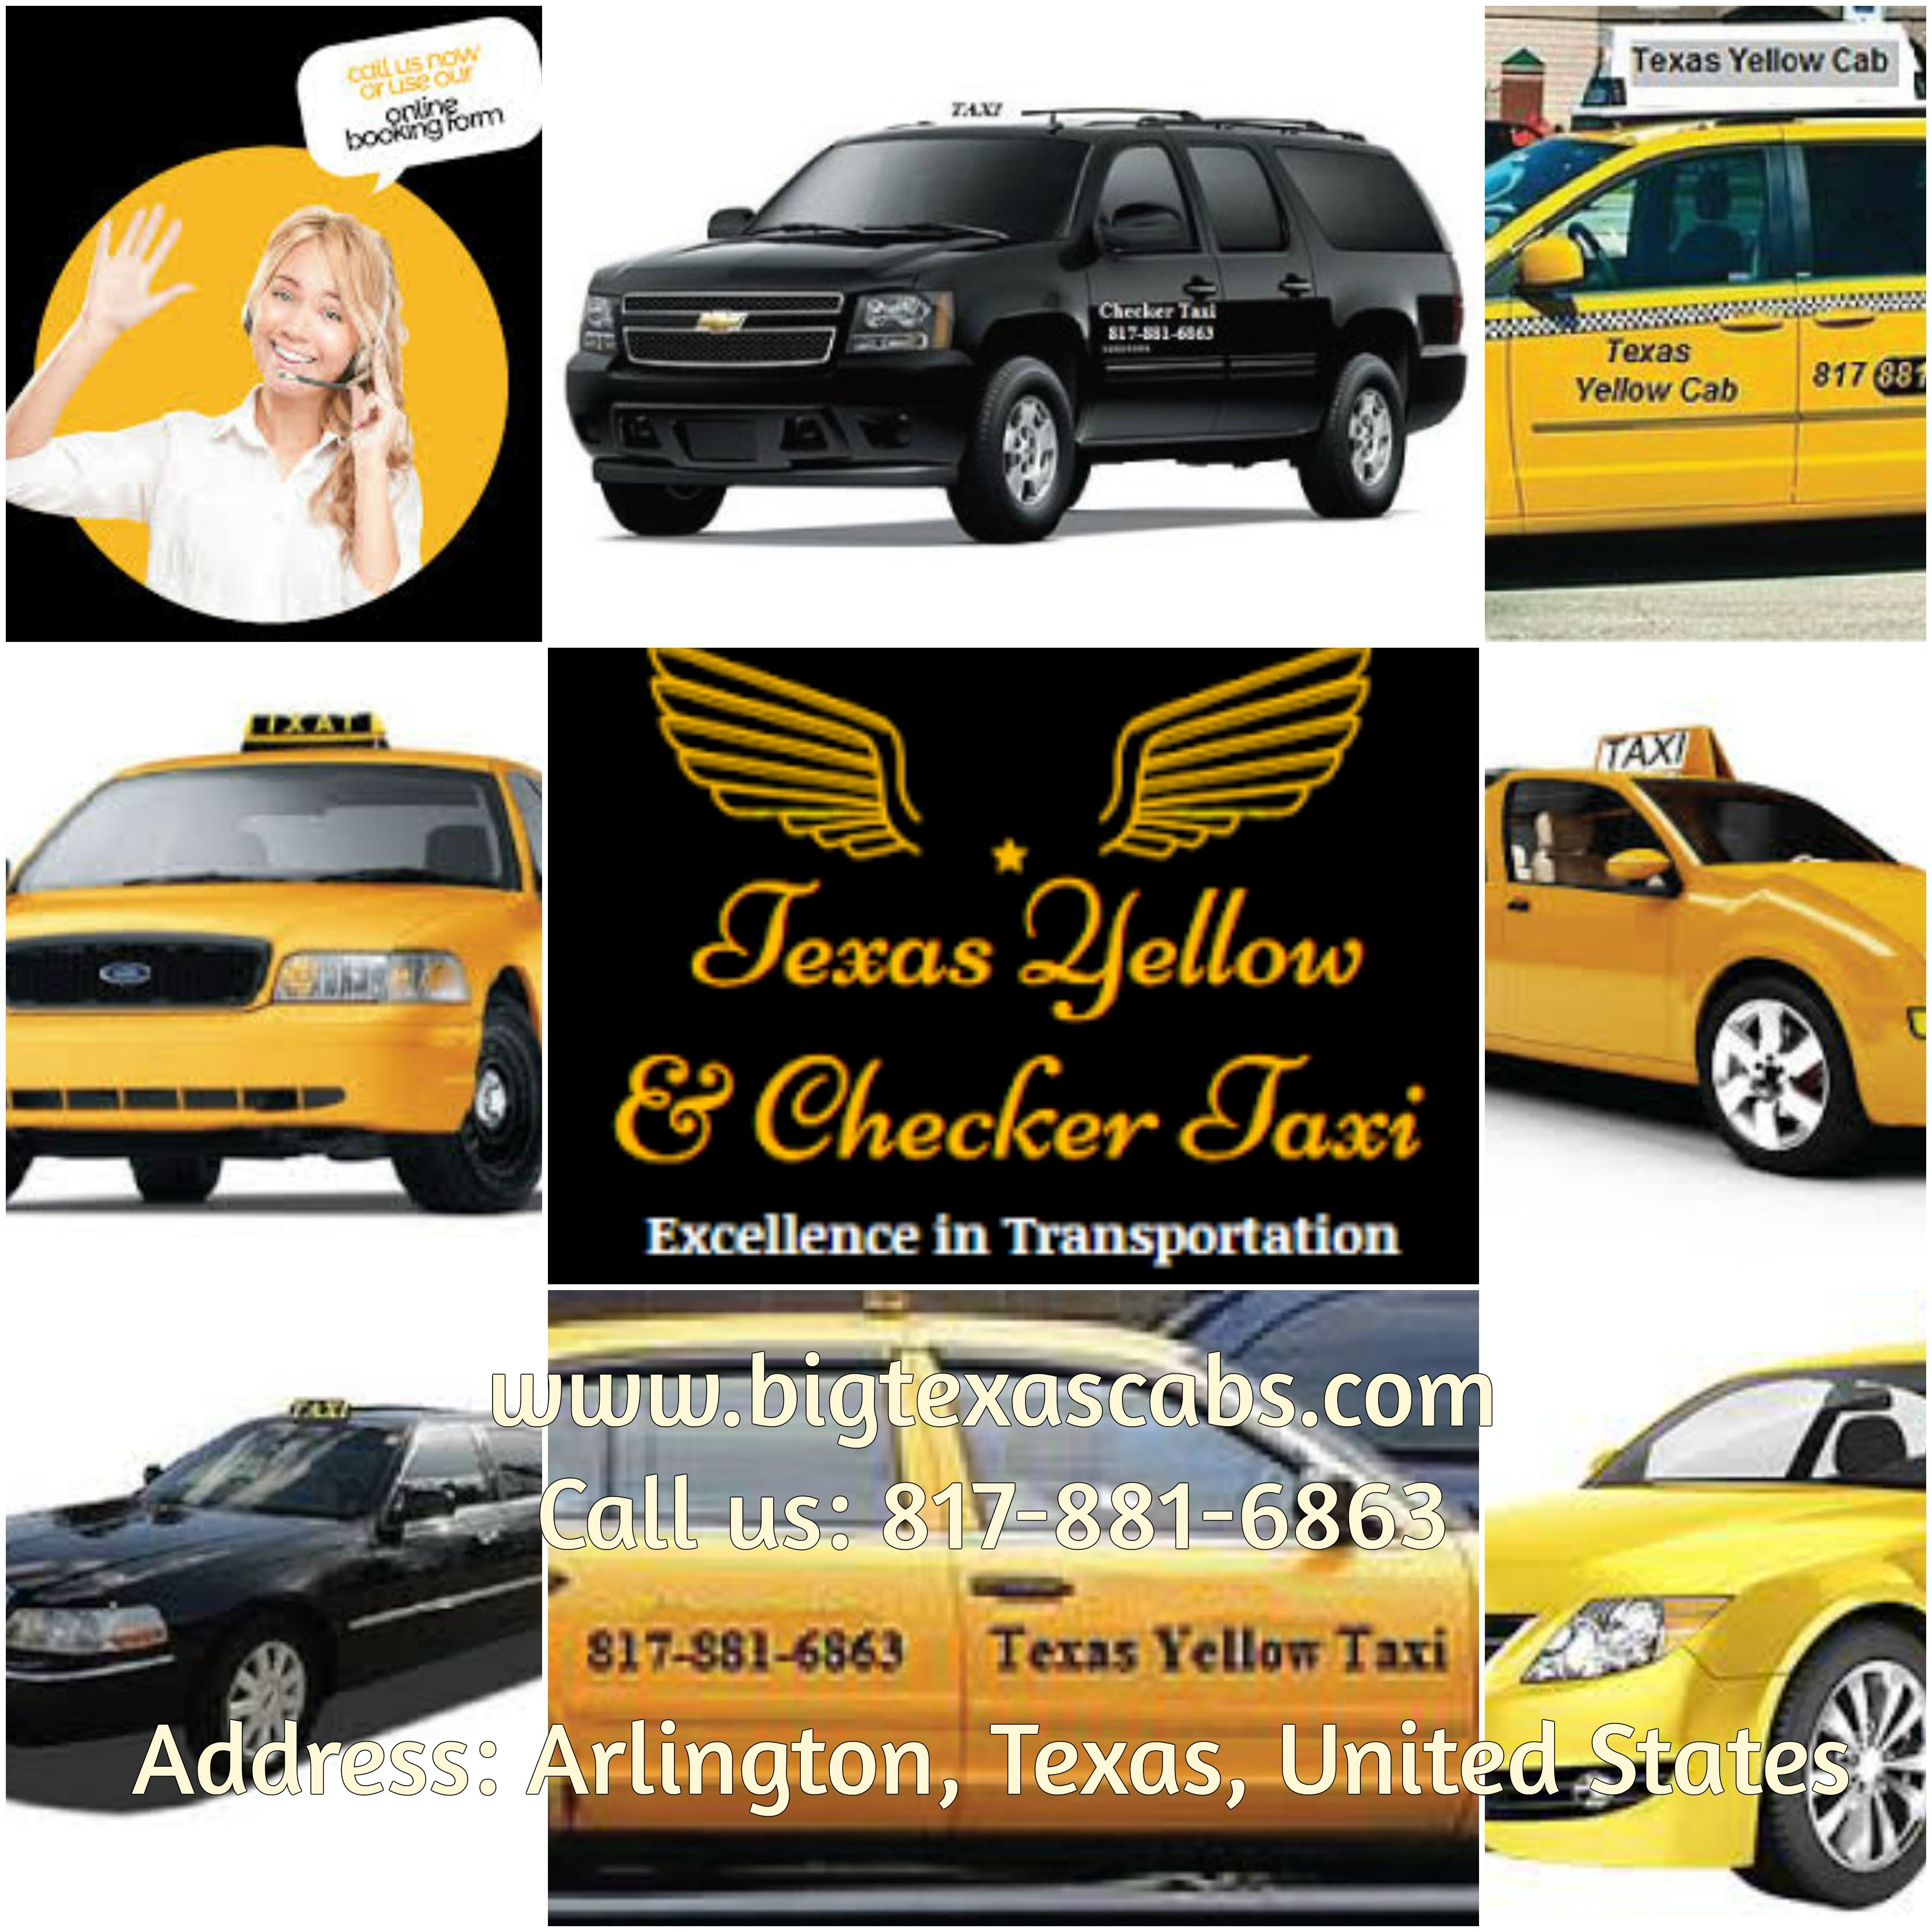 we the big texas cabs propose the vest yellow cab at arlington tx